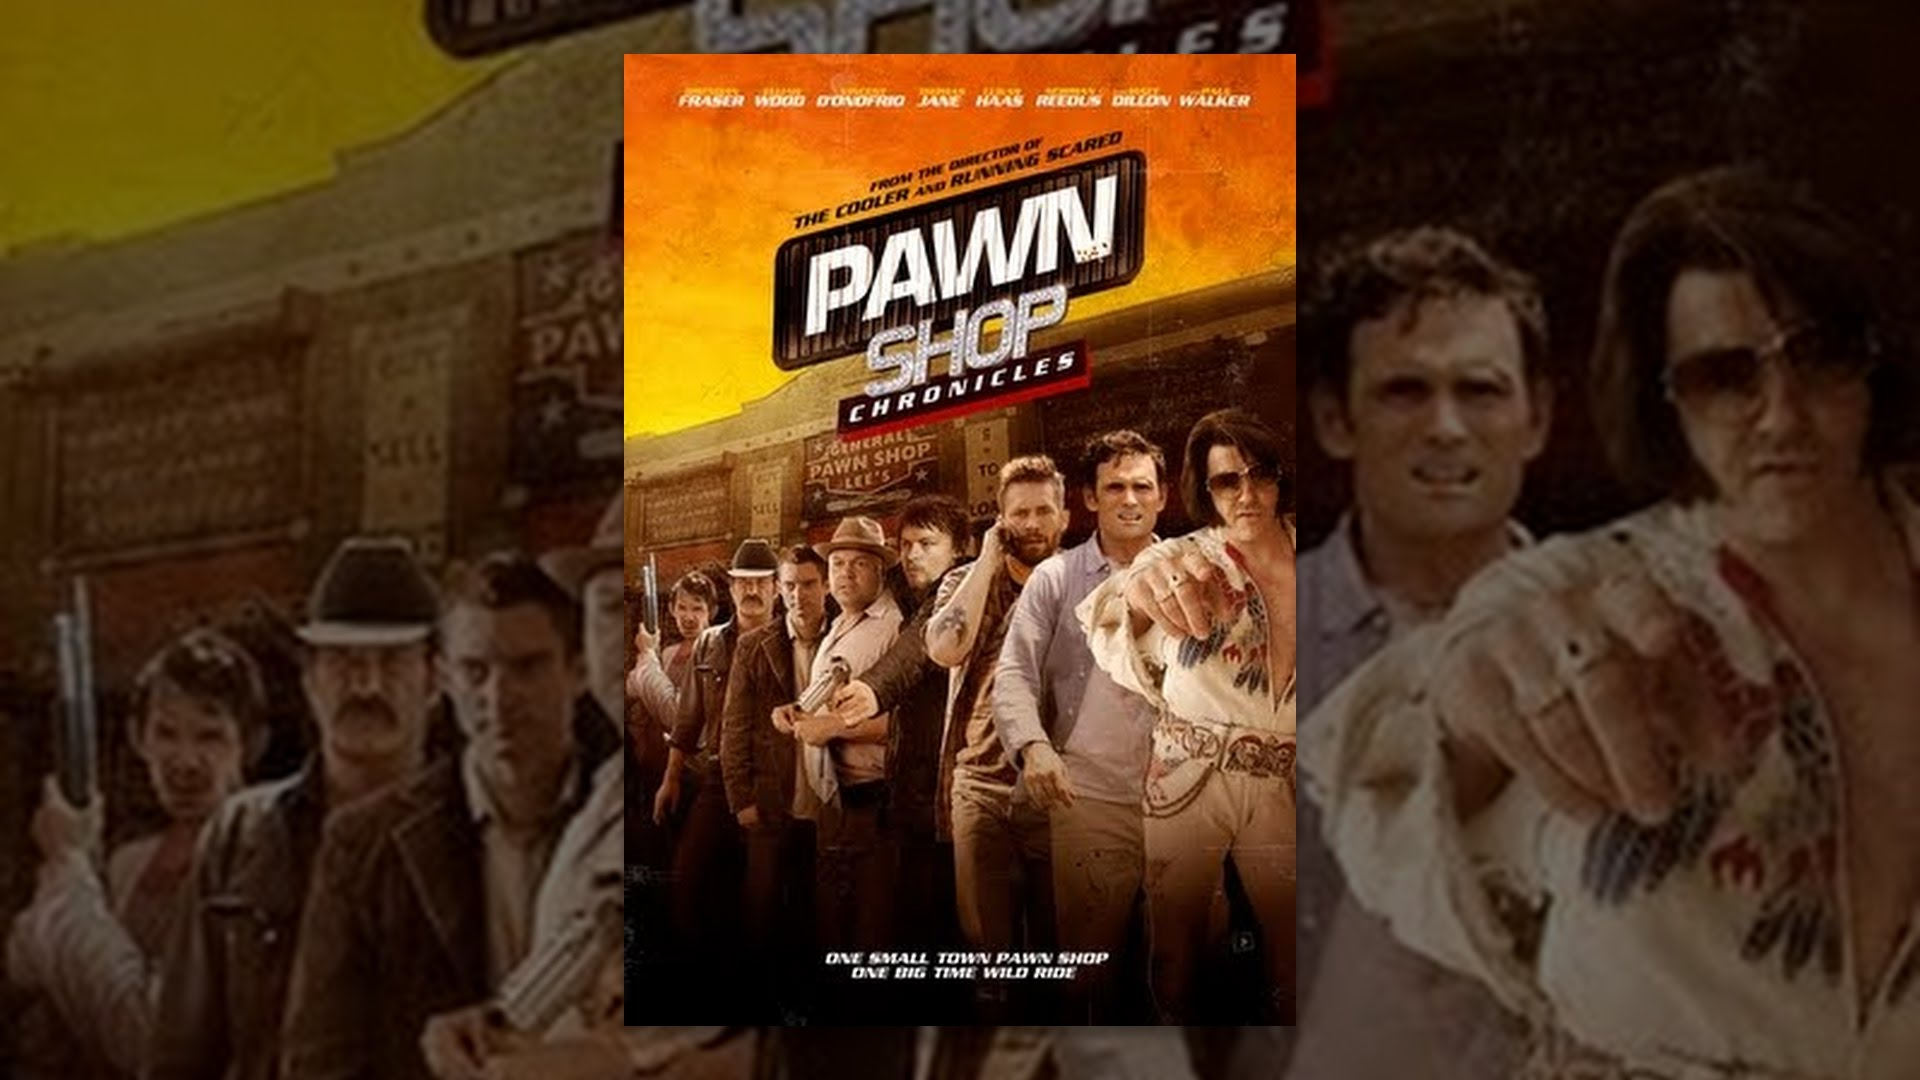 Download Pawn Shop Chronicles